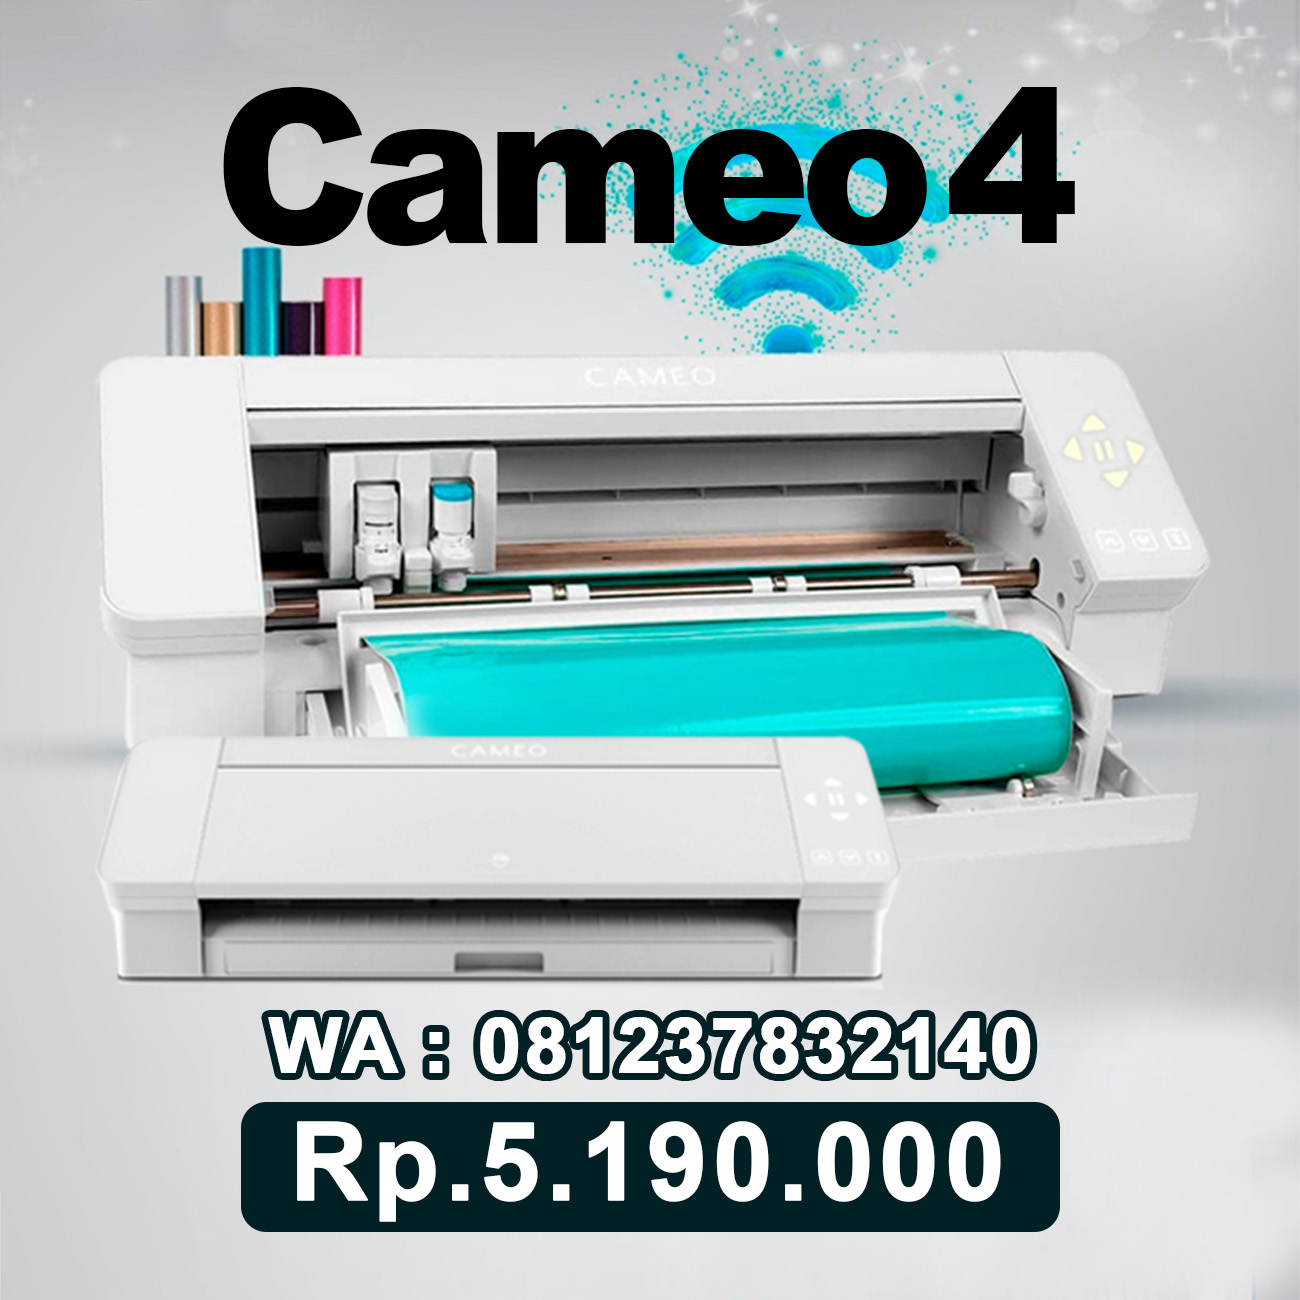 JUAL MESIN CUTTING STICKER CAMEO 4 Larantuka